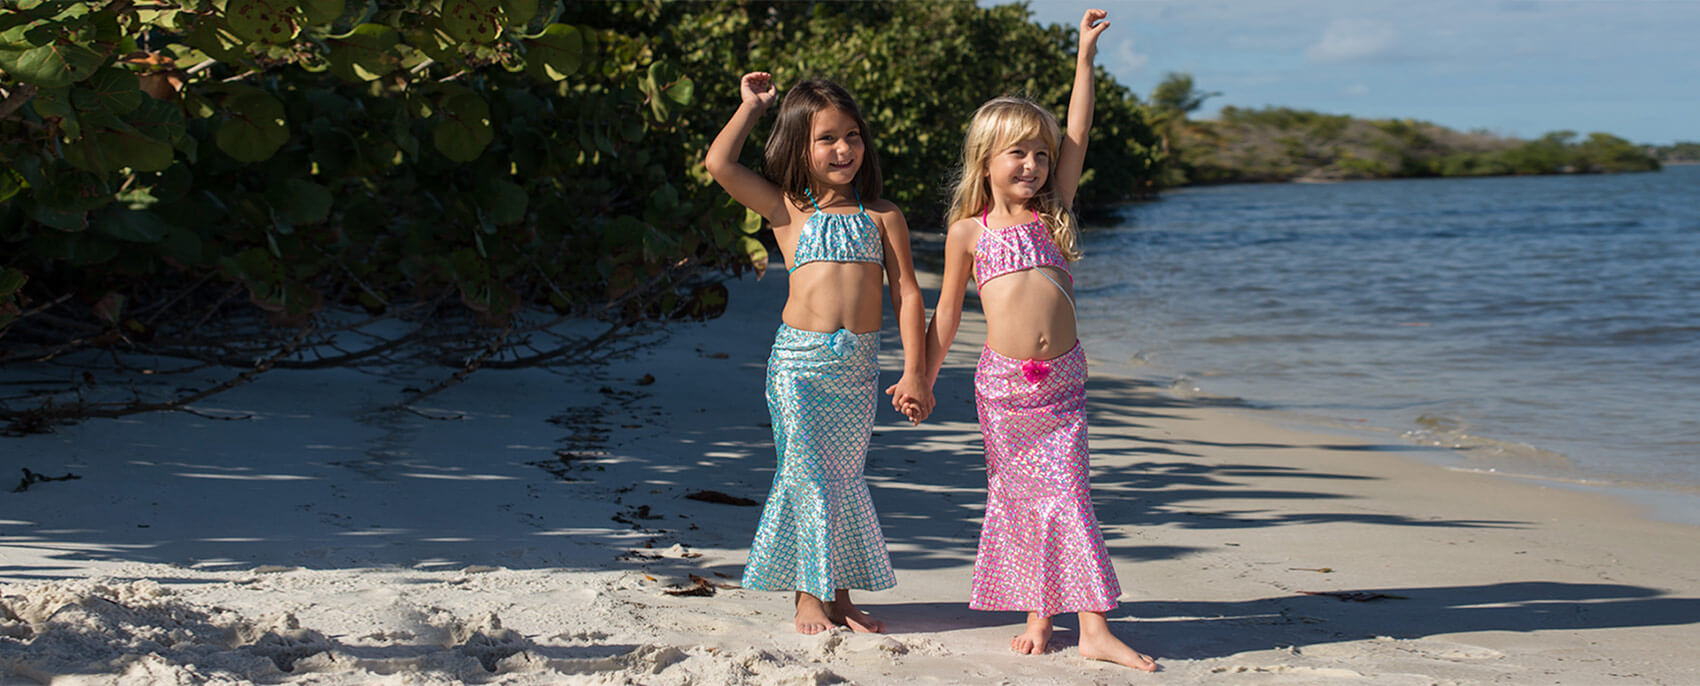 Shebop Beach Mermaid Swimsuits and Accessories Intro Slideshow Slide 1